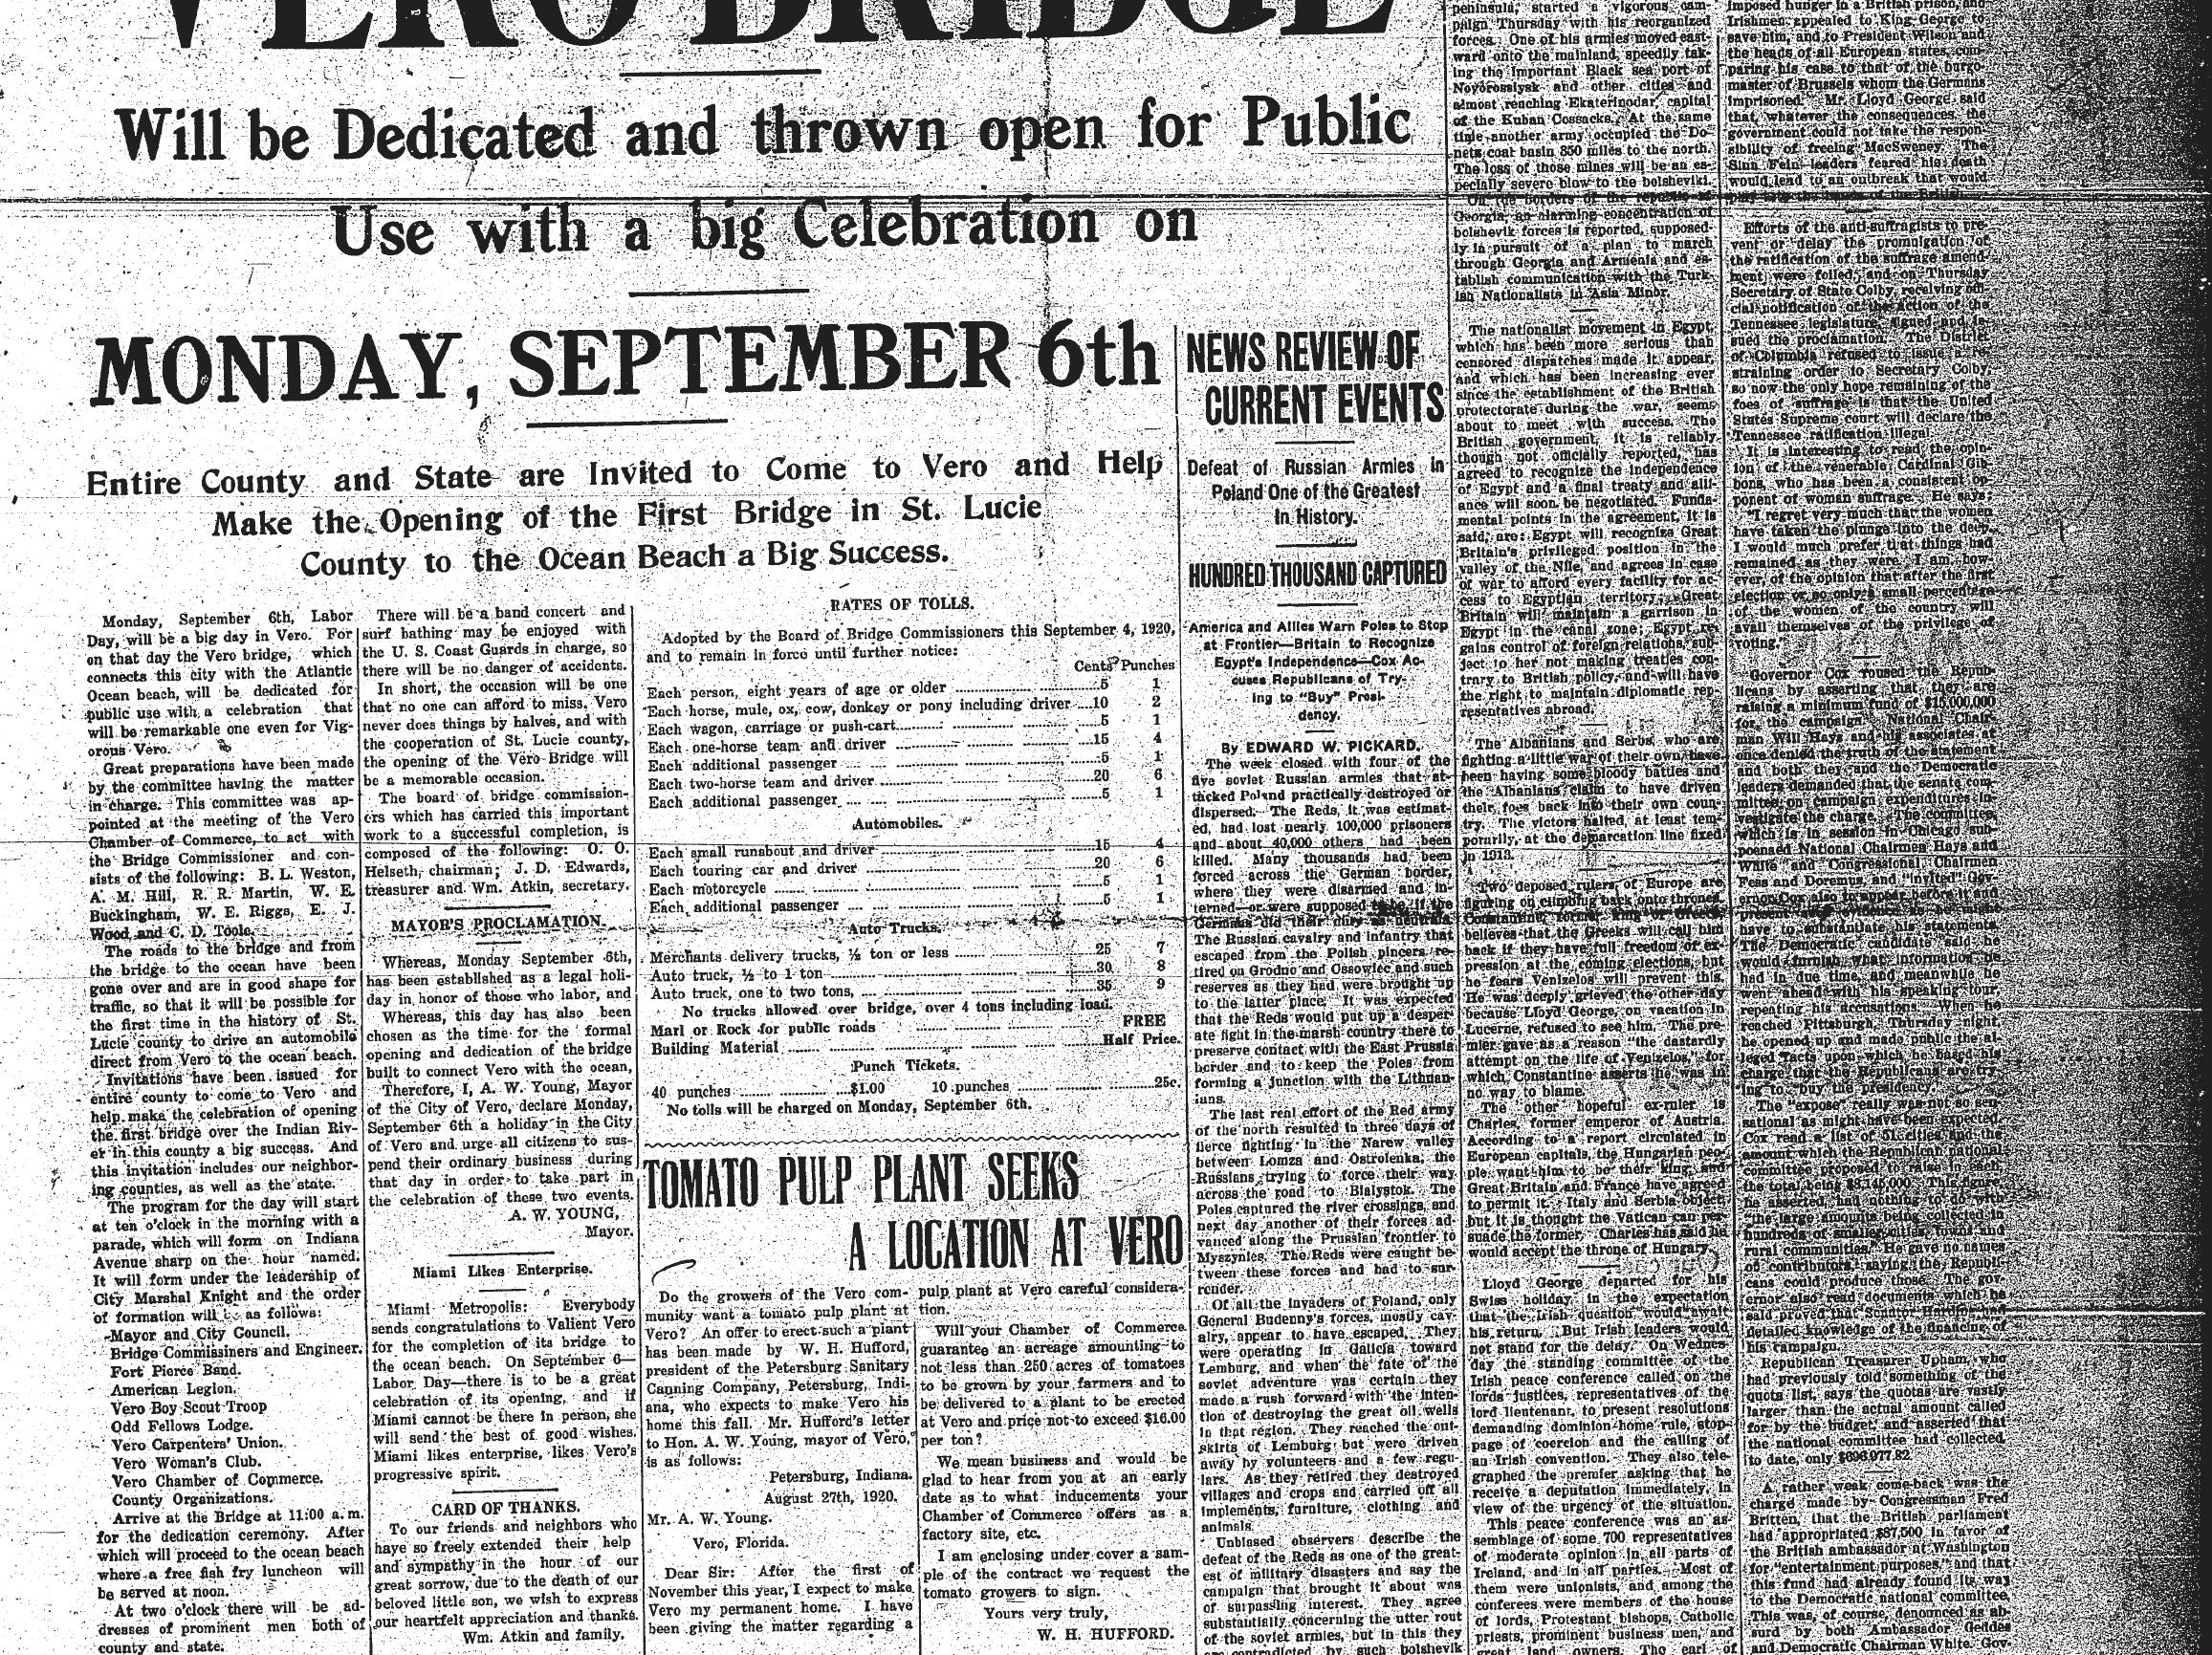 September 4, 1920, Vero Bridge will be Dedicated and thrown open for Public Use with a big Celebration